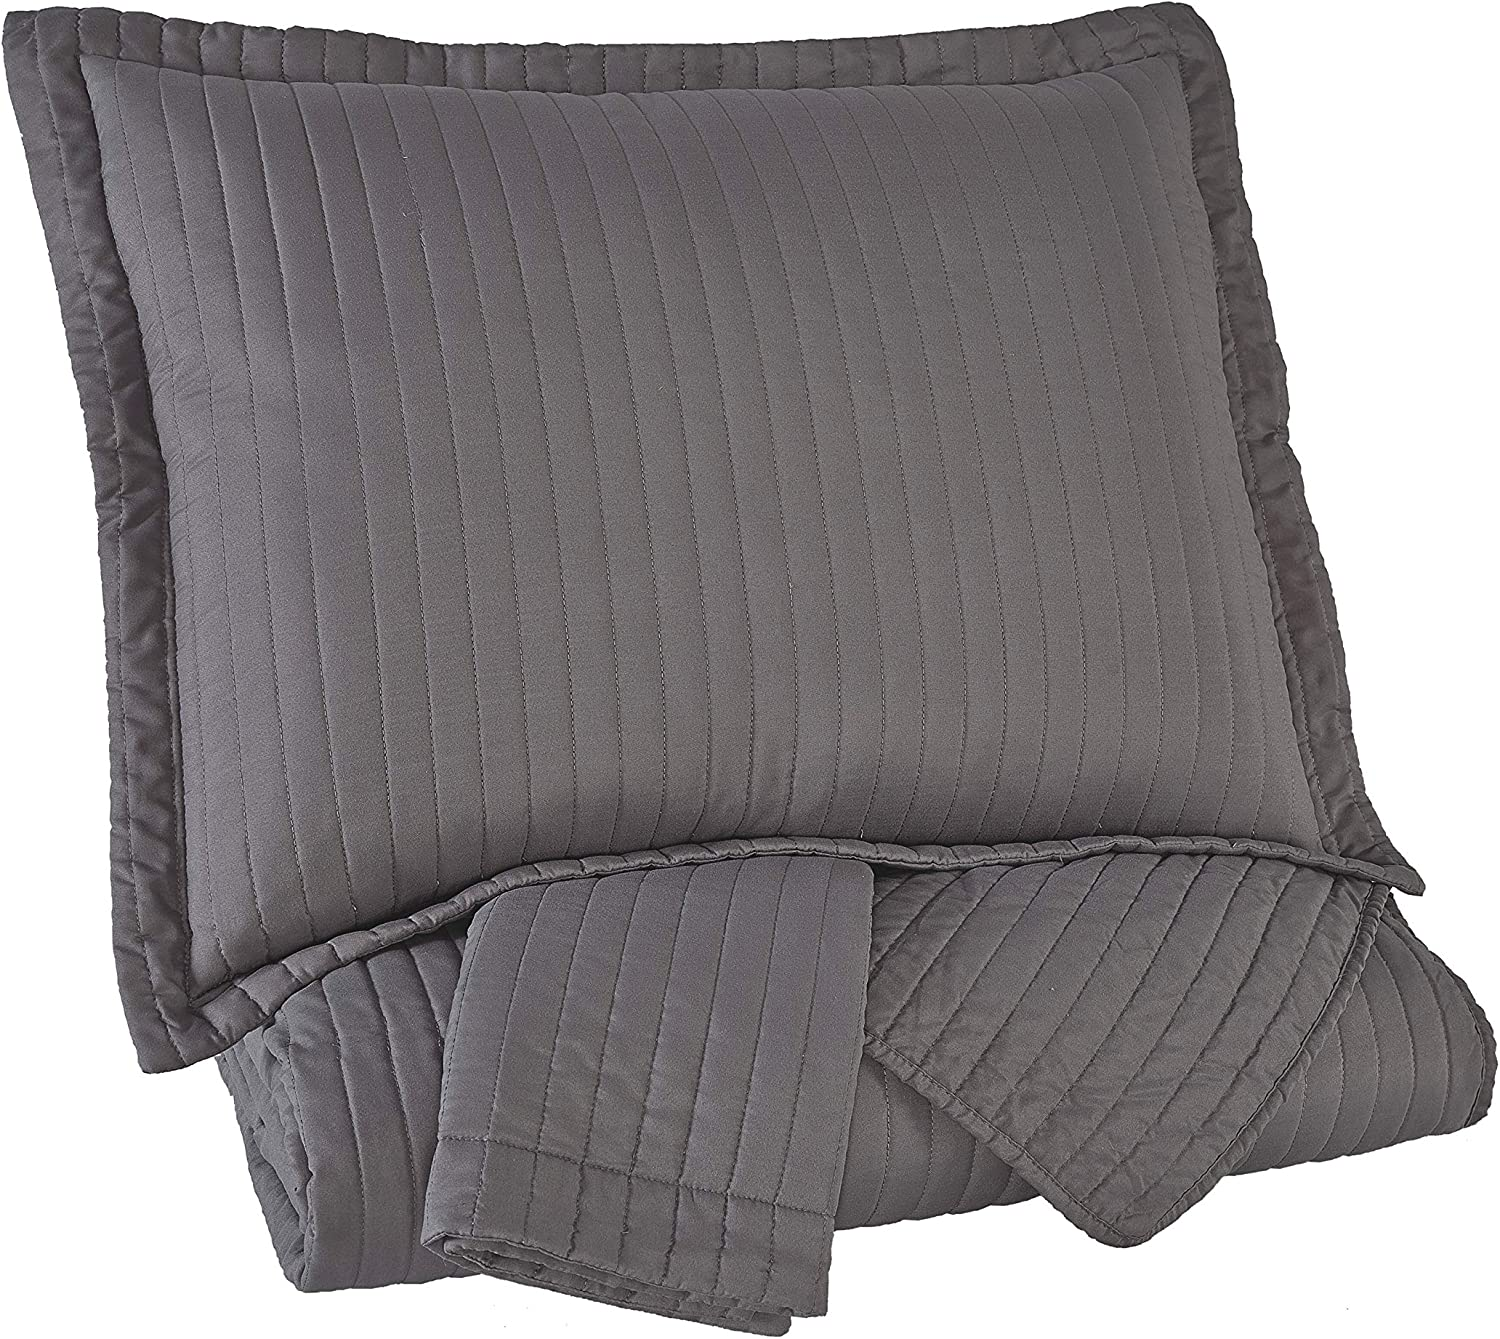 Signature Design by Ashley Q498003Q Raleda 3 Piece King Coverlet Set, Queen, Gray